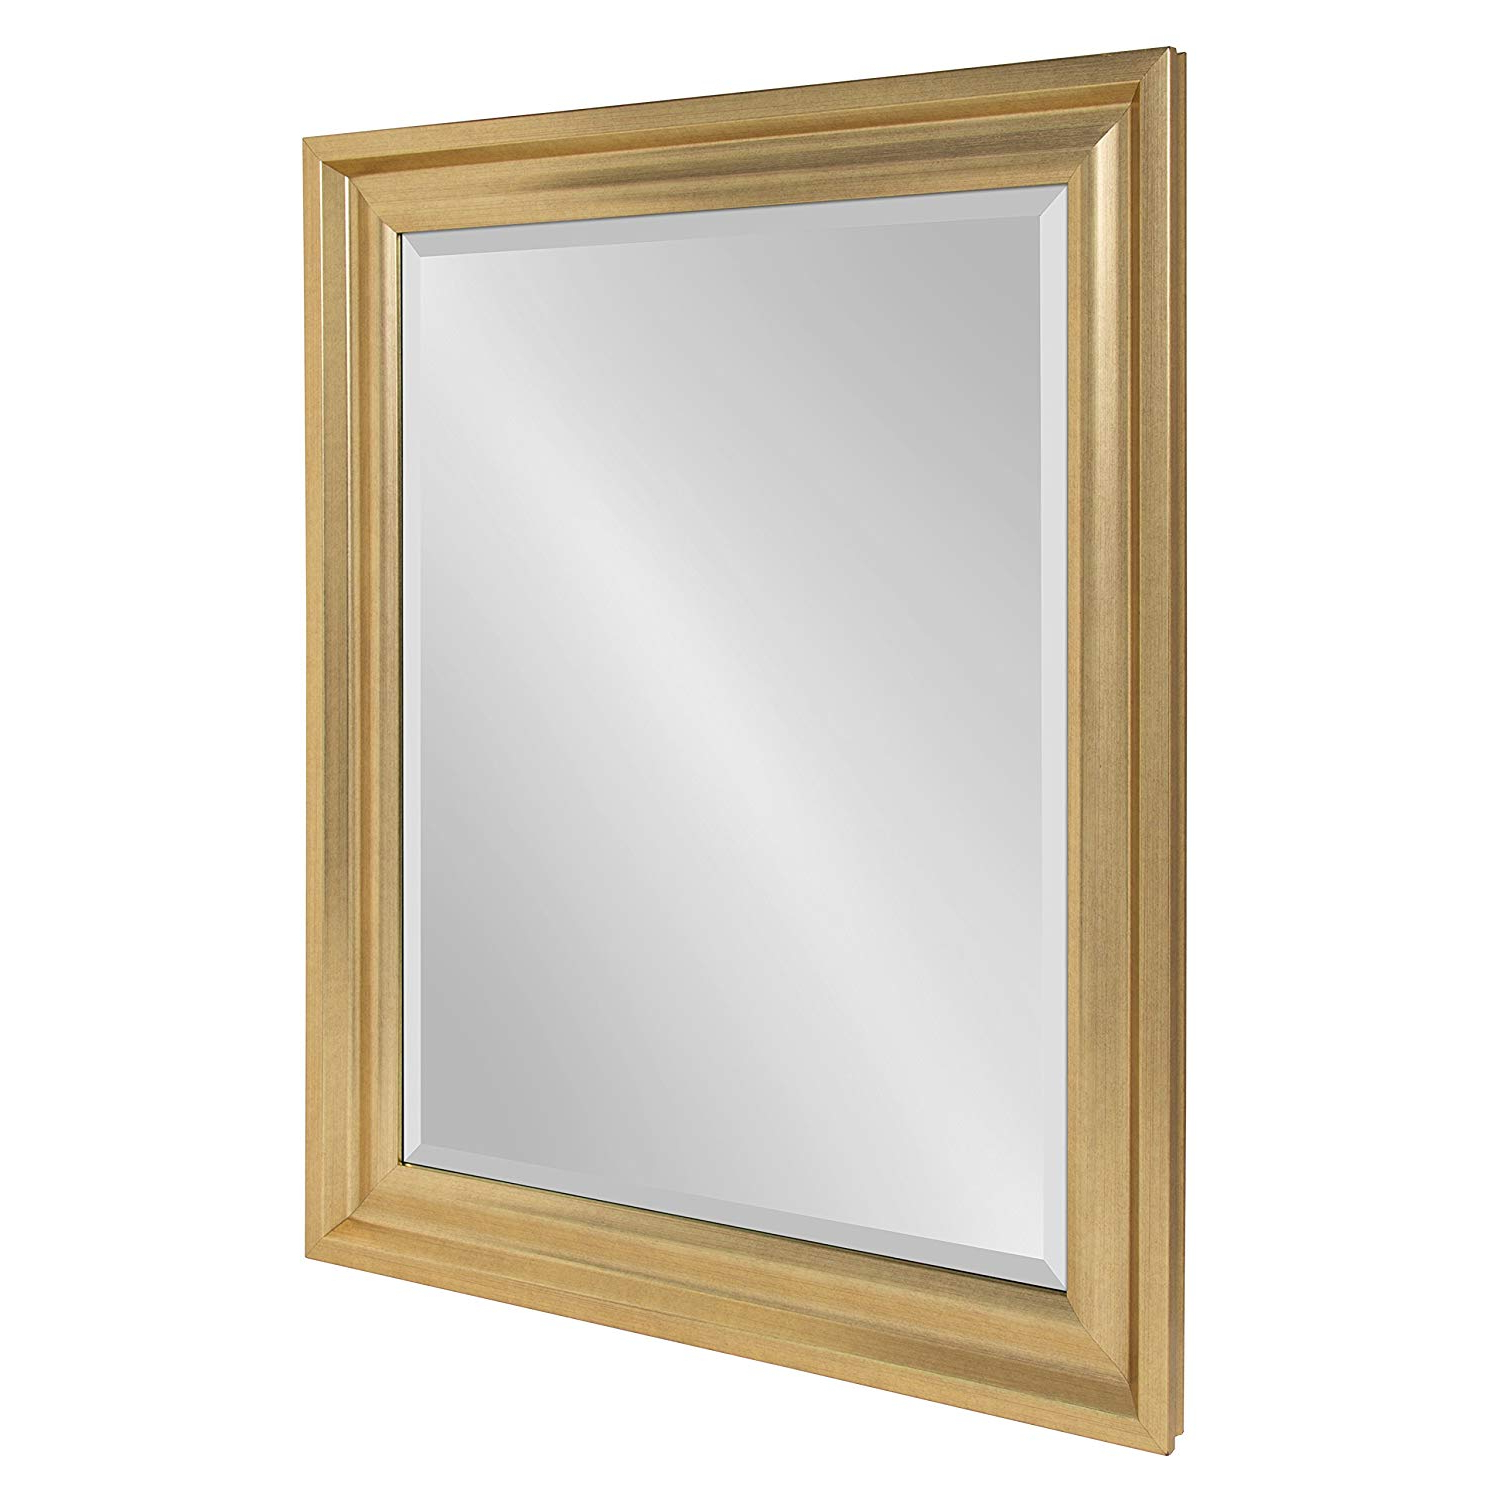 Rectangle Plastic Beveled Wall Mirrors With Regard To Well Liked Kate And Laurel – Umber Large Framed Rectangle Beveled Wall Mirror, 27.5 X (View 4 of 20)